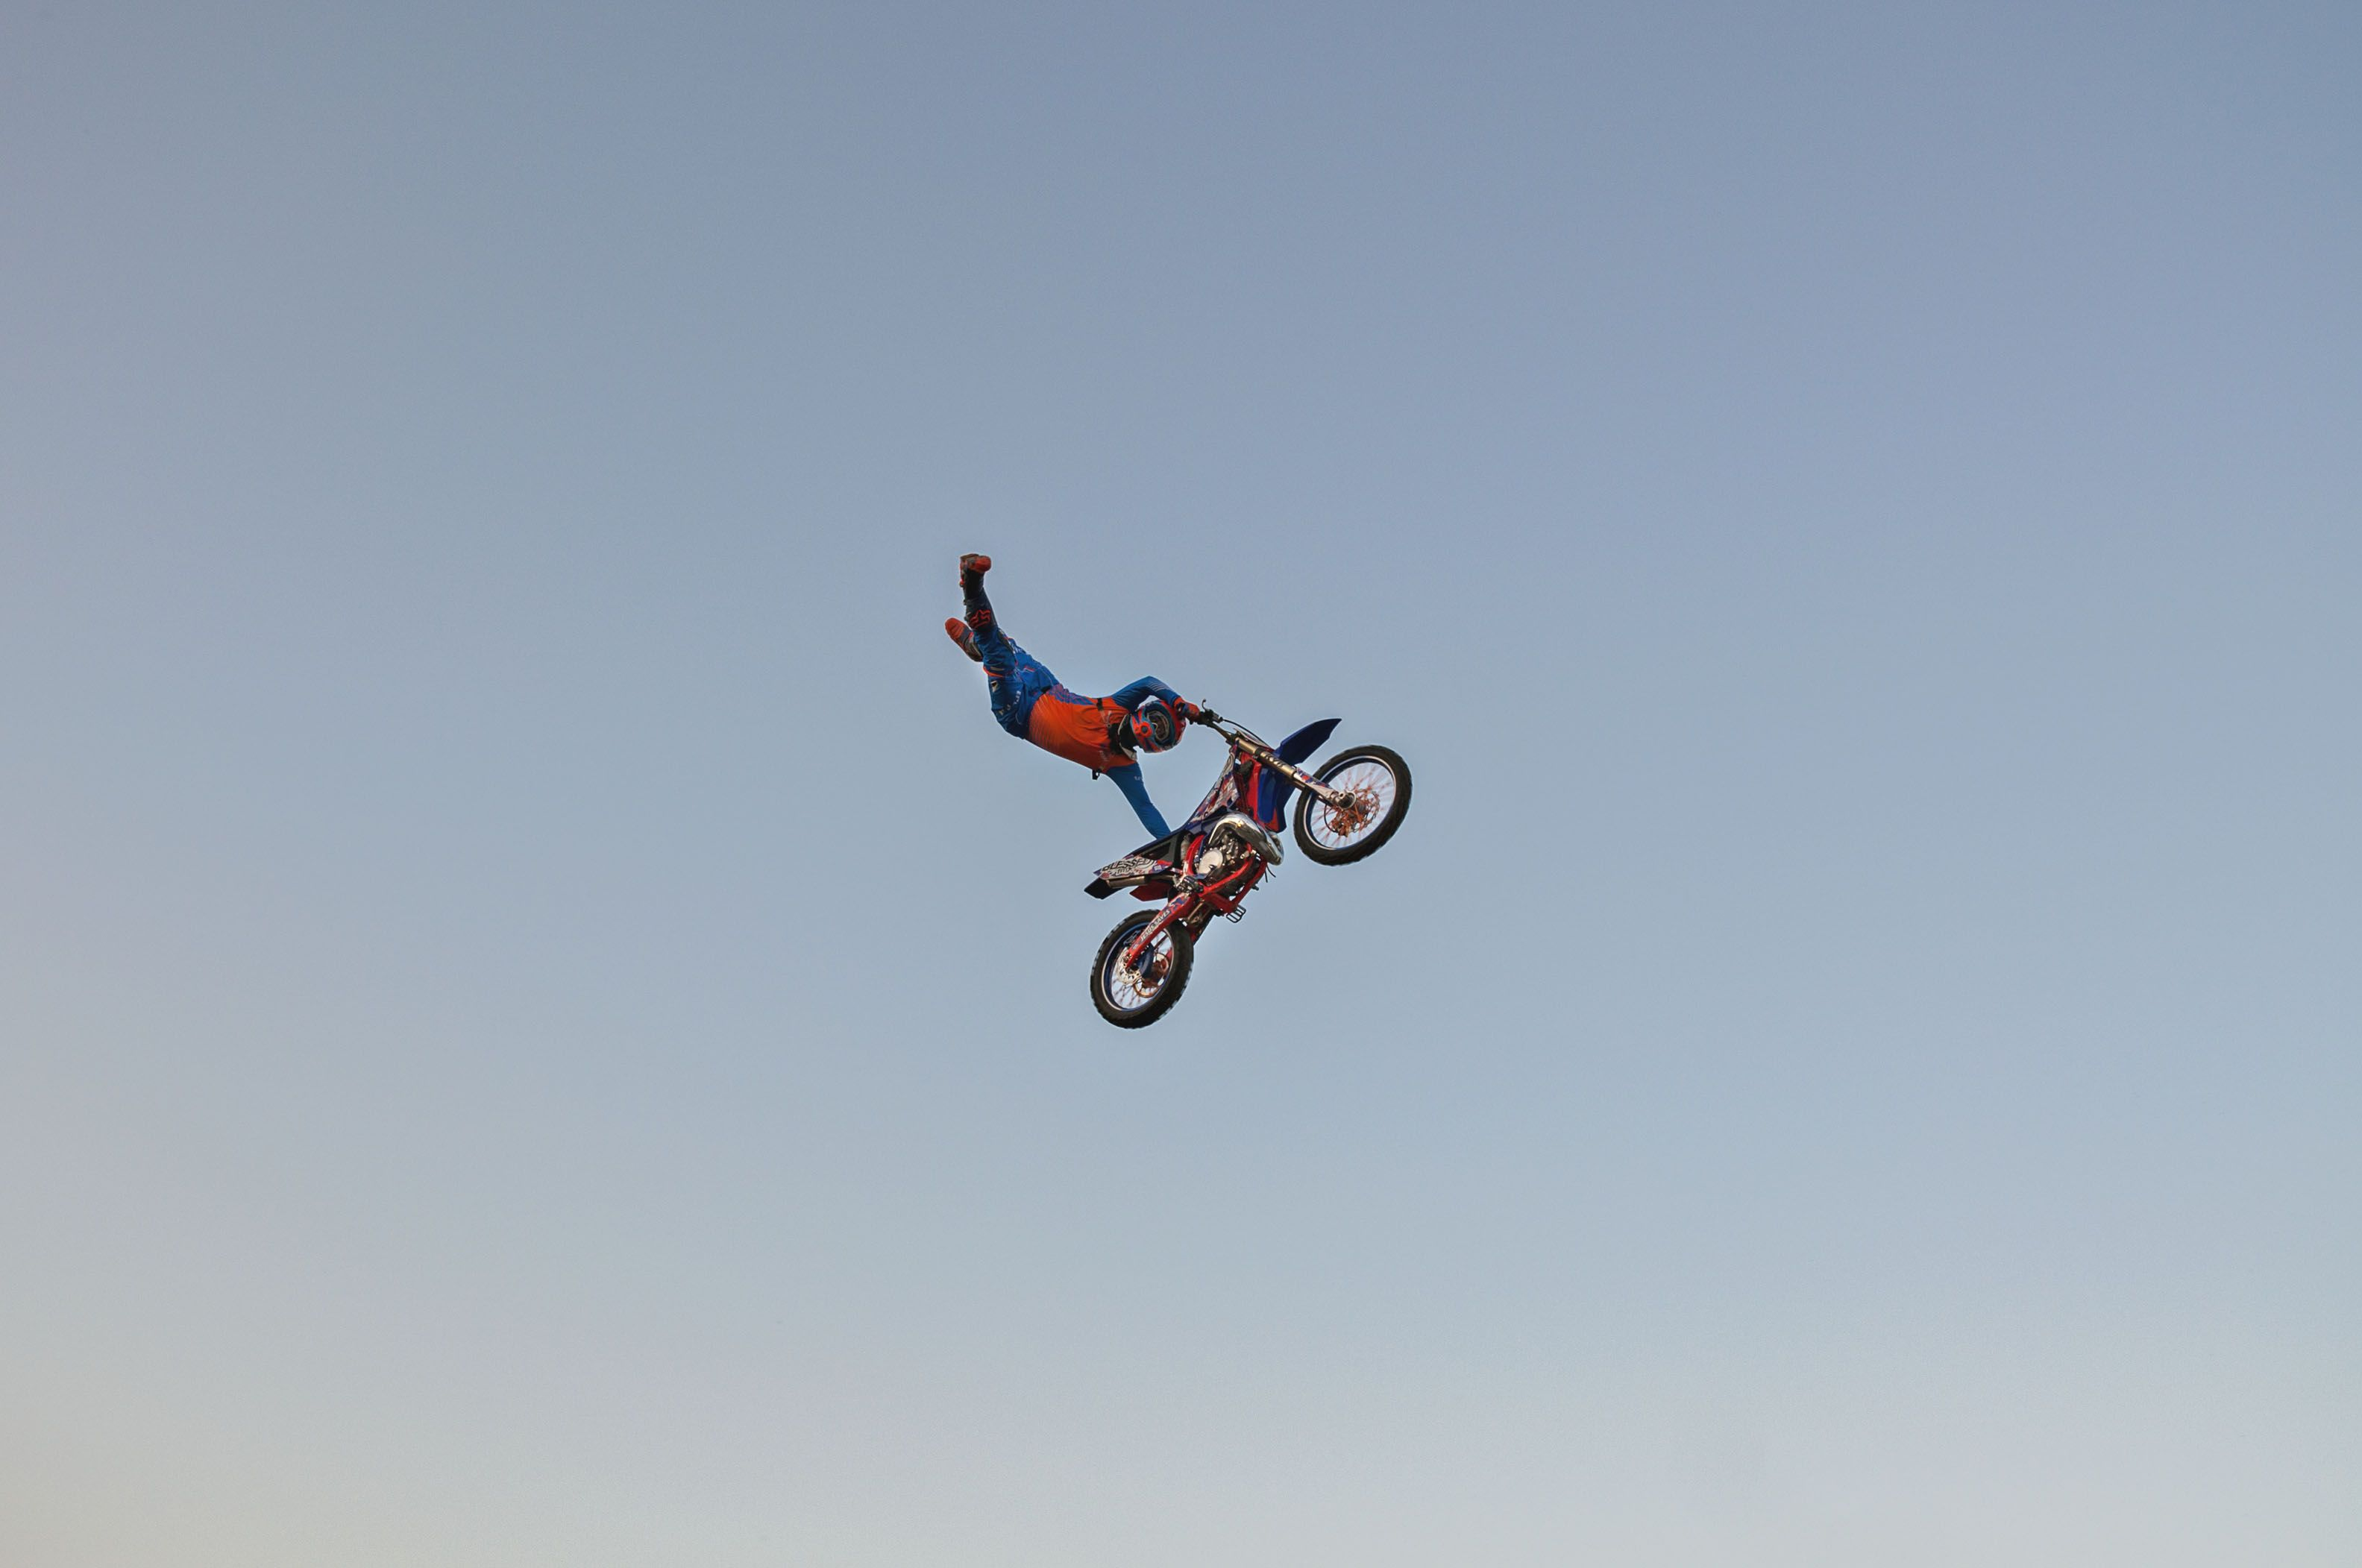 Ed Rossi, motorcross rider for Sick Air FMX, soars high above the grandstand at the Whiteside County fair in Morrison, Thursday, August 20, 2021 during a show at the fairgrounds. The stands were packed with visitors watching the flips, tricks and dirt bike stunts.